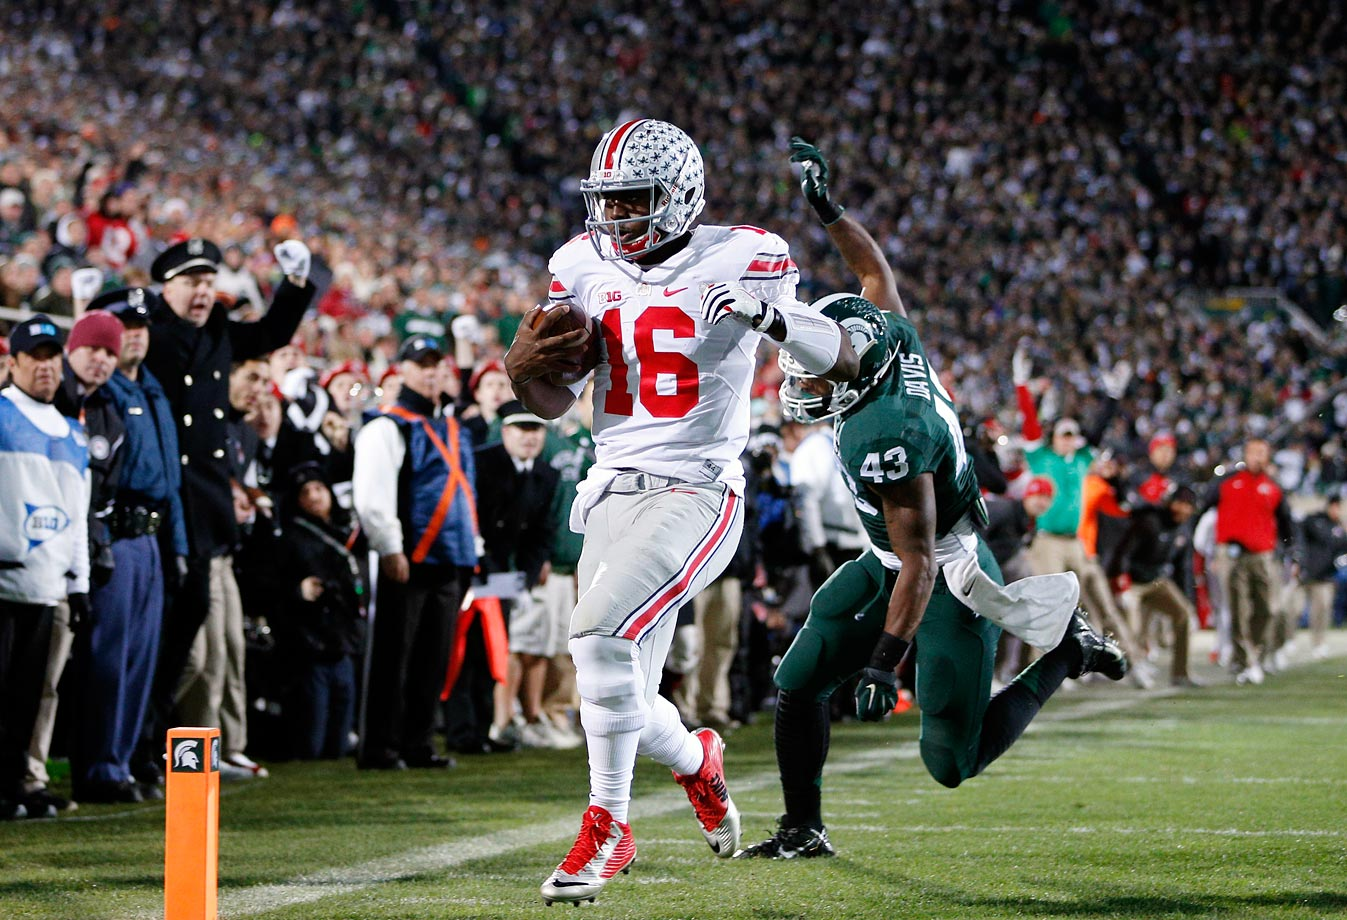 In a College Football Playoff elimination game, Ohio State proved its superiority with a dominant victory in East Lansing. Barrett passed for 300 yards, rushed 86 and scored five touchdowns while Elliott tallied 154 yards on the ground with two scores. The Buckeyes never trailed in the second half.